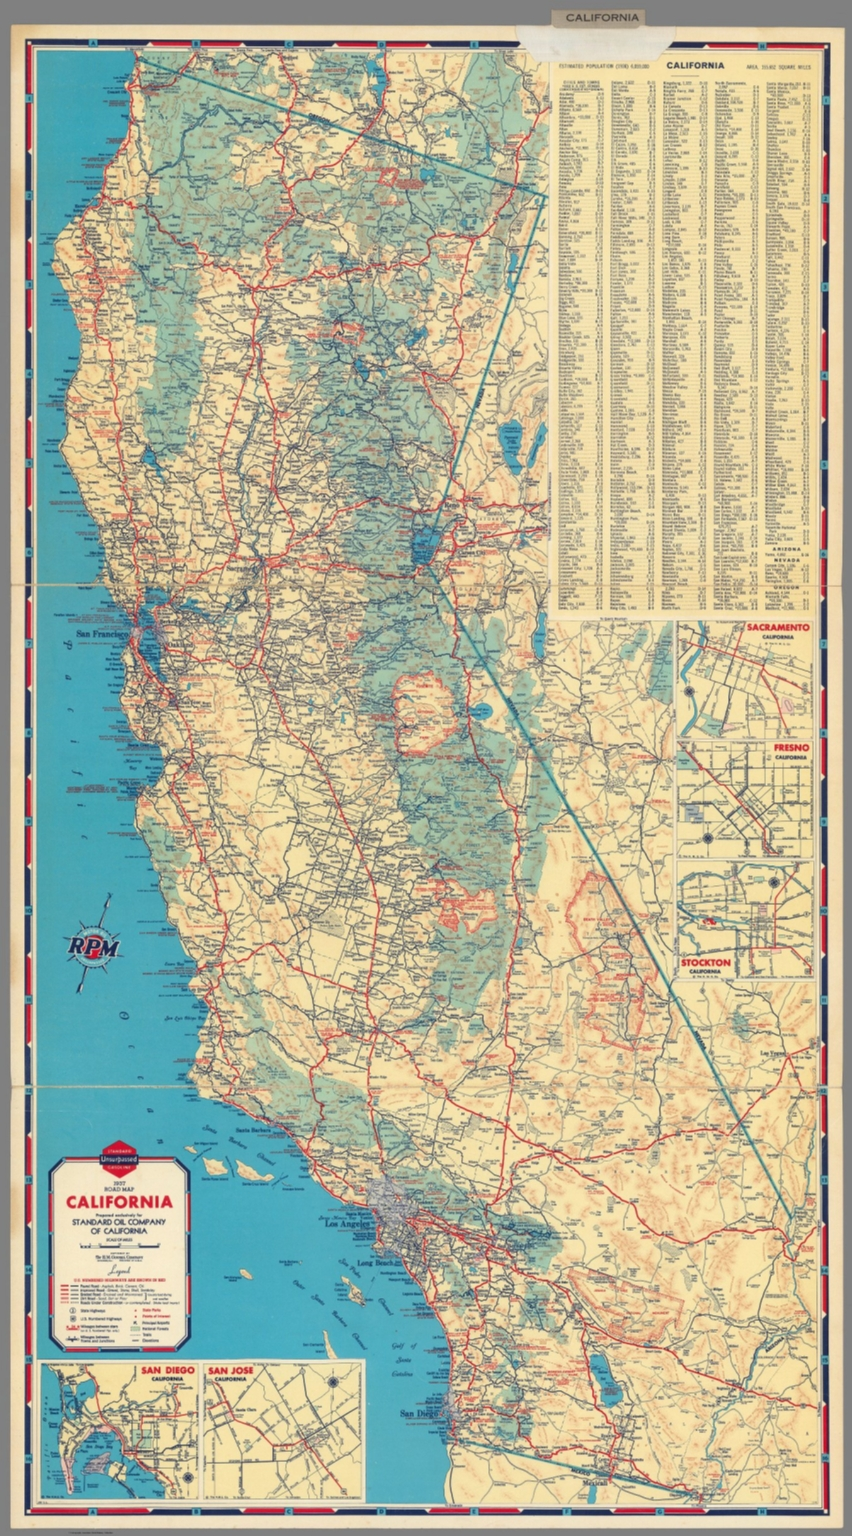 1937 road map of California